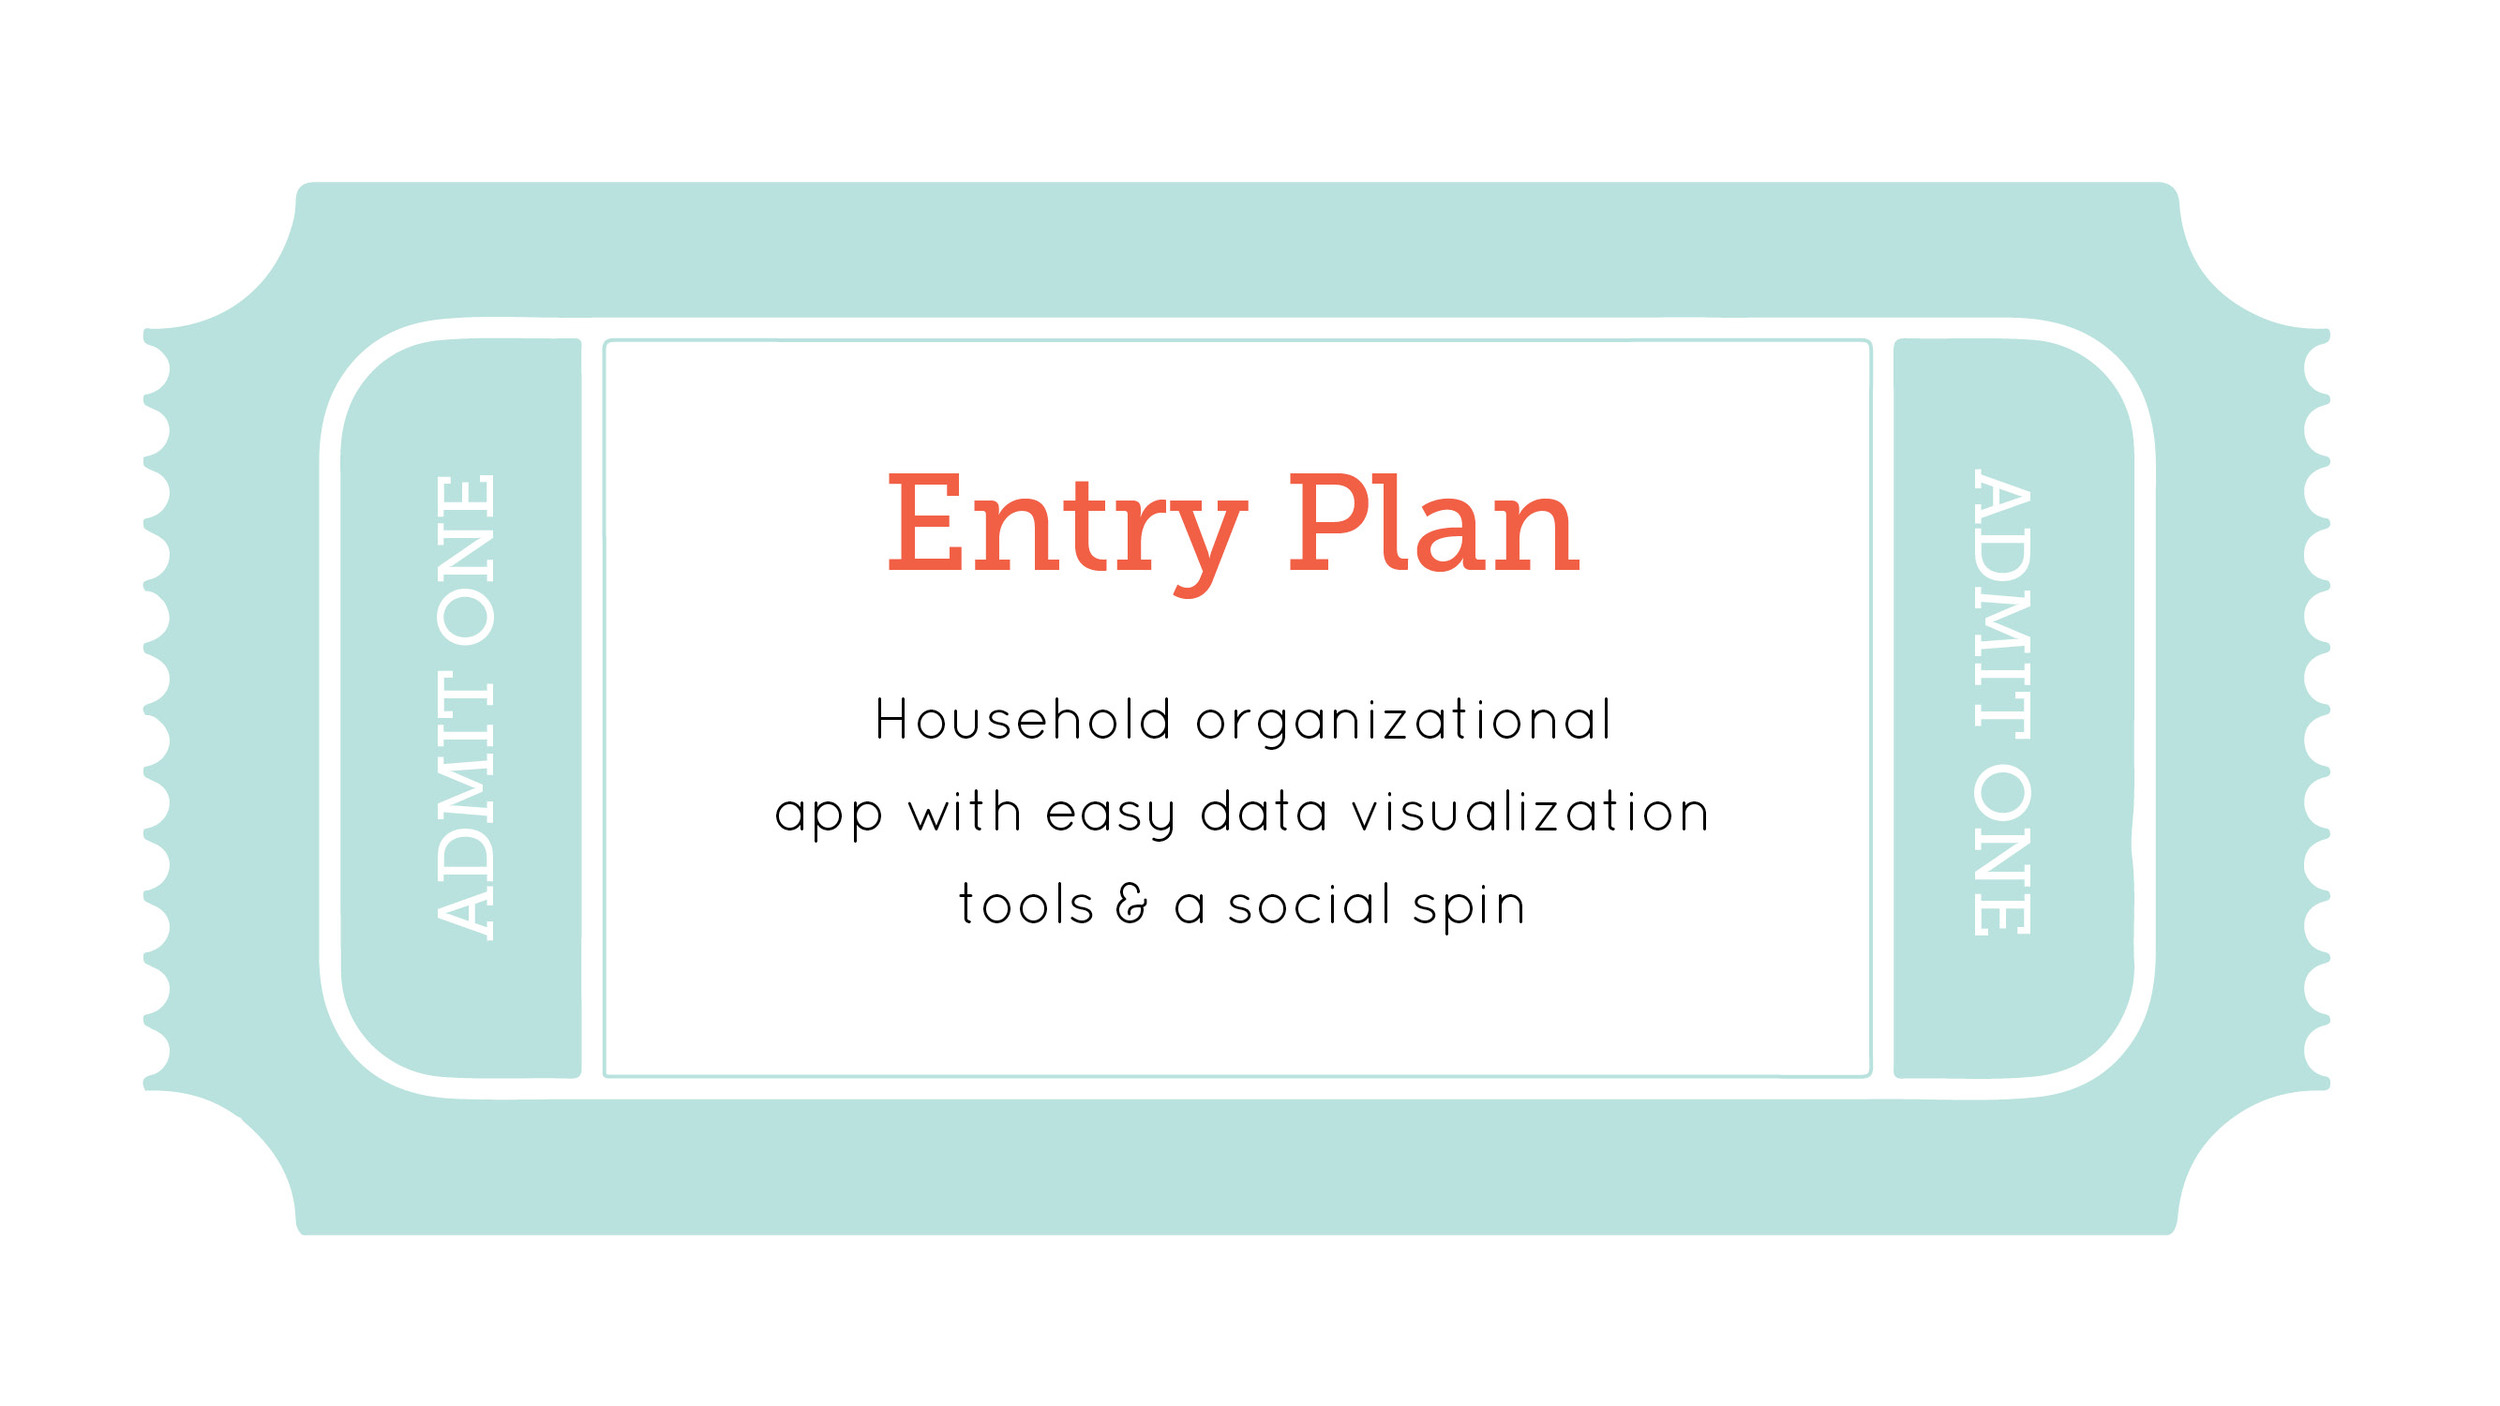 ENTRY PLAN: In short, the concept of Roomr was to help make shared household planning and organization less tedious and muddled by providing easy-to-use visual tools as well as a digital social space for groups to gather, talk and coordinate.